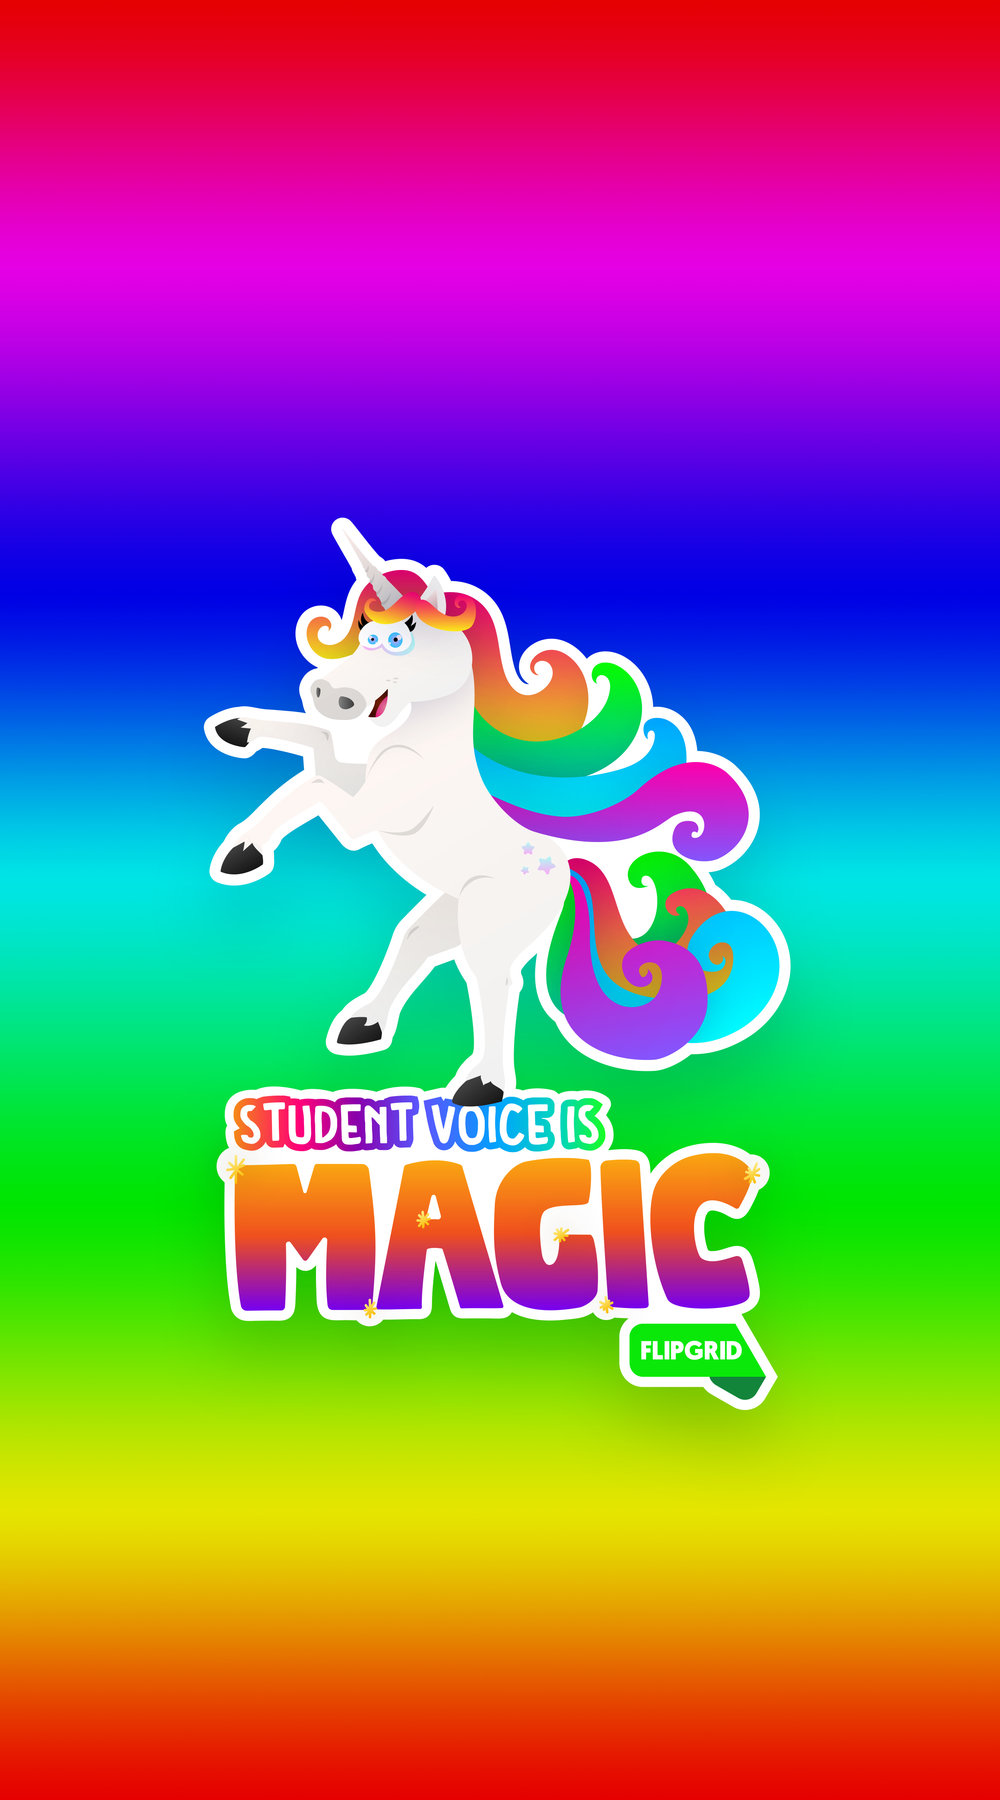 Flipgrid_Unicorn_Magic_wallpaper.jpg